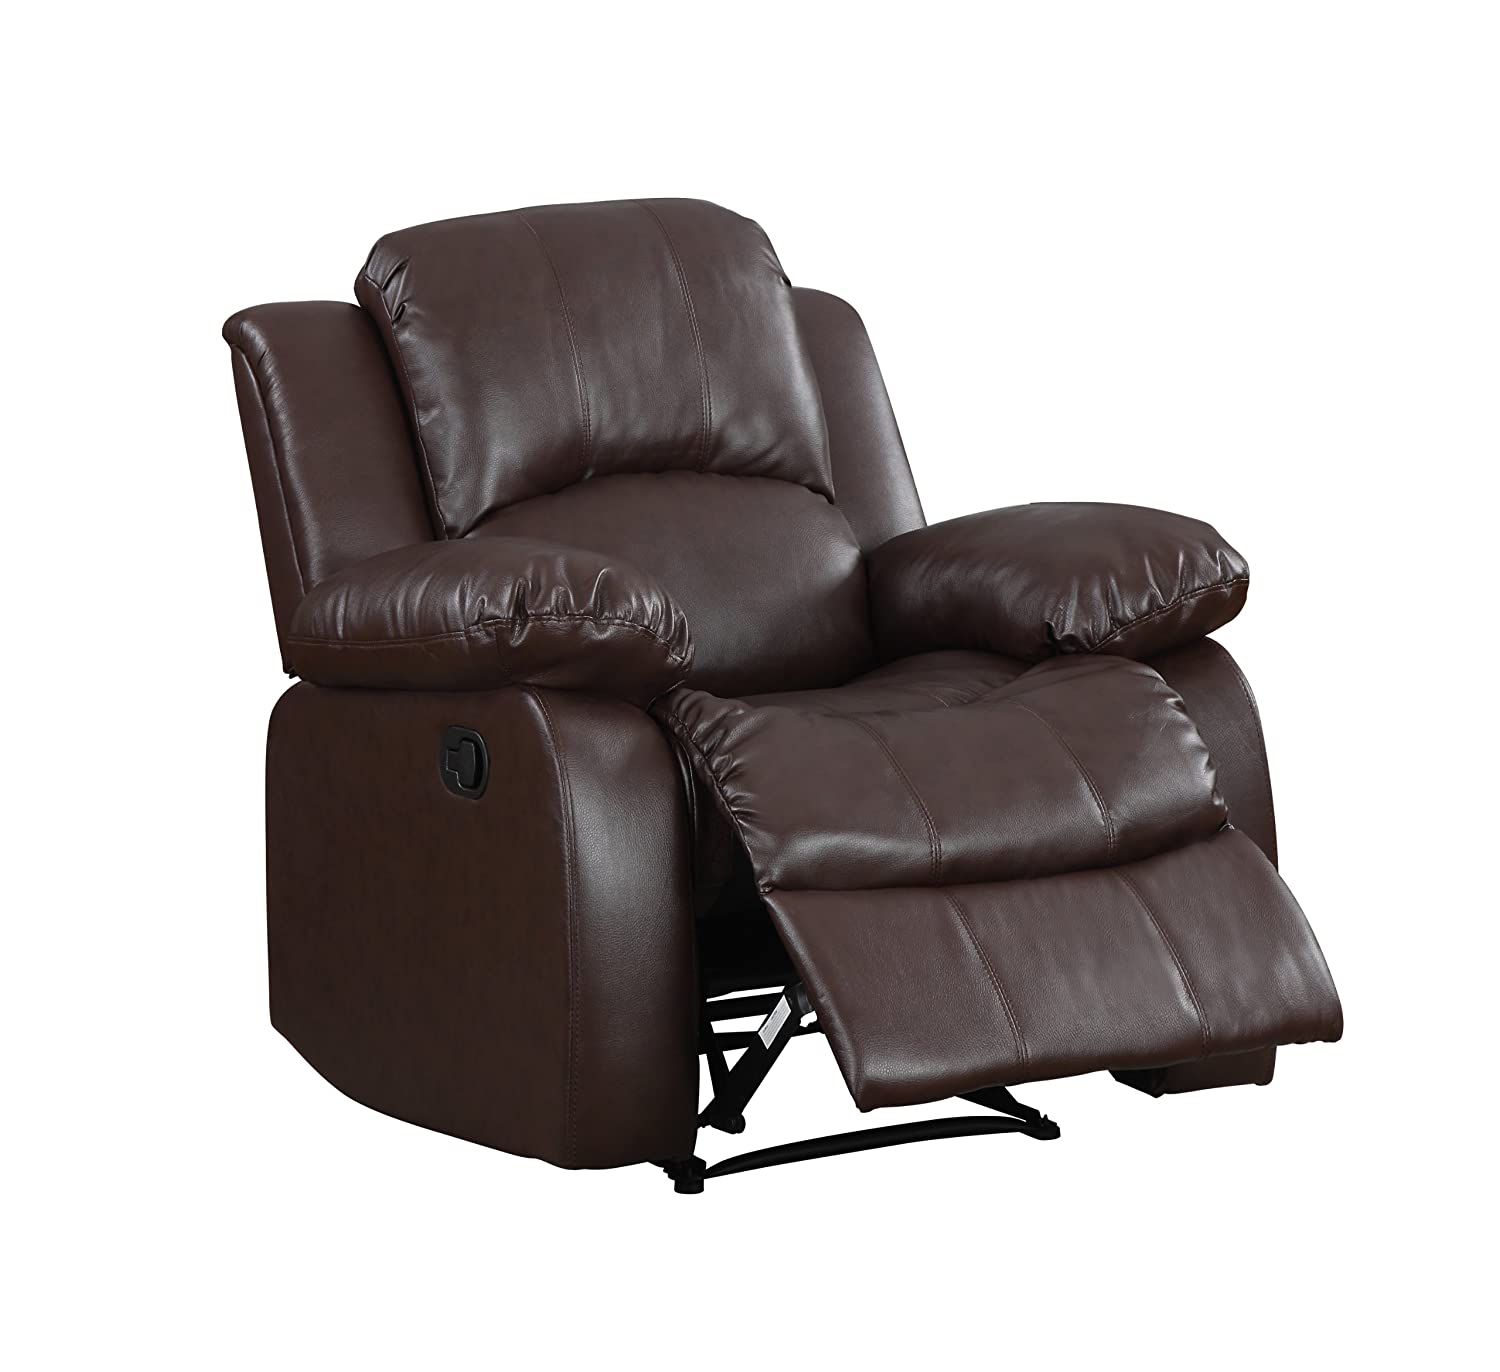 Amazon.com Homelegance Upholstered Recliner Chair Warm Brown Bonded Kitchen u0026 Dining  sc 1 st  Amazon.com & Amazon.com: Homelegance Upholstered Recliner Chair Warm Brown ... islam-shia.org